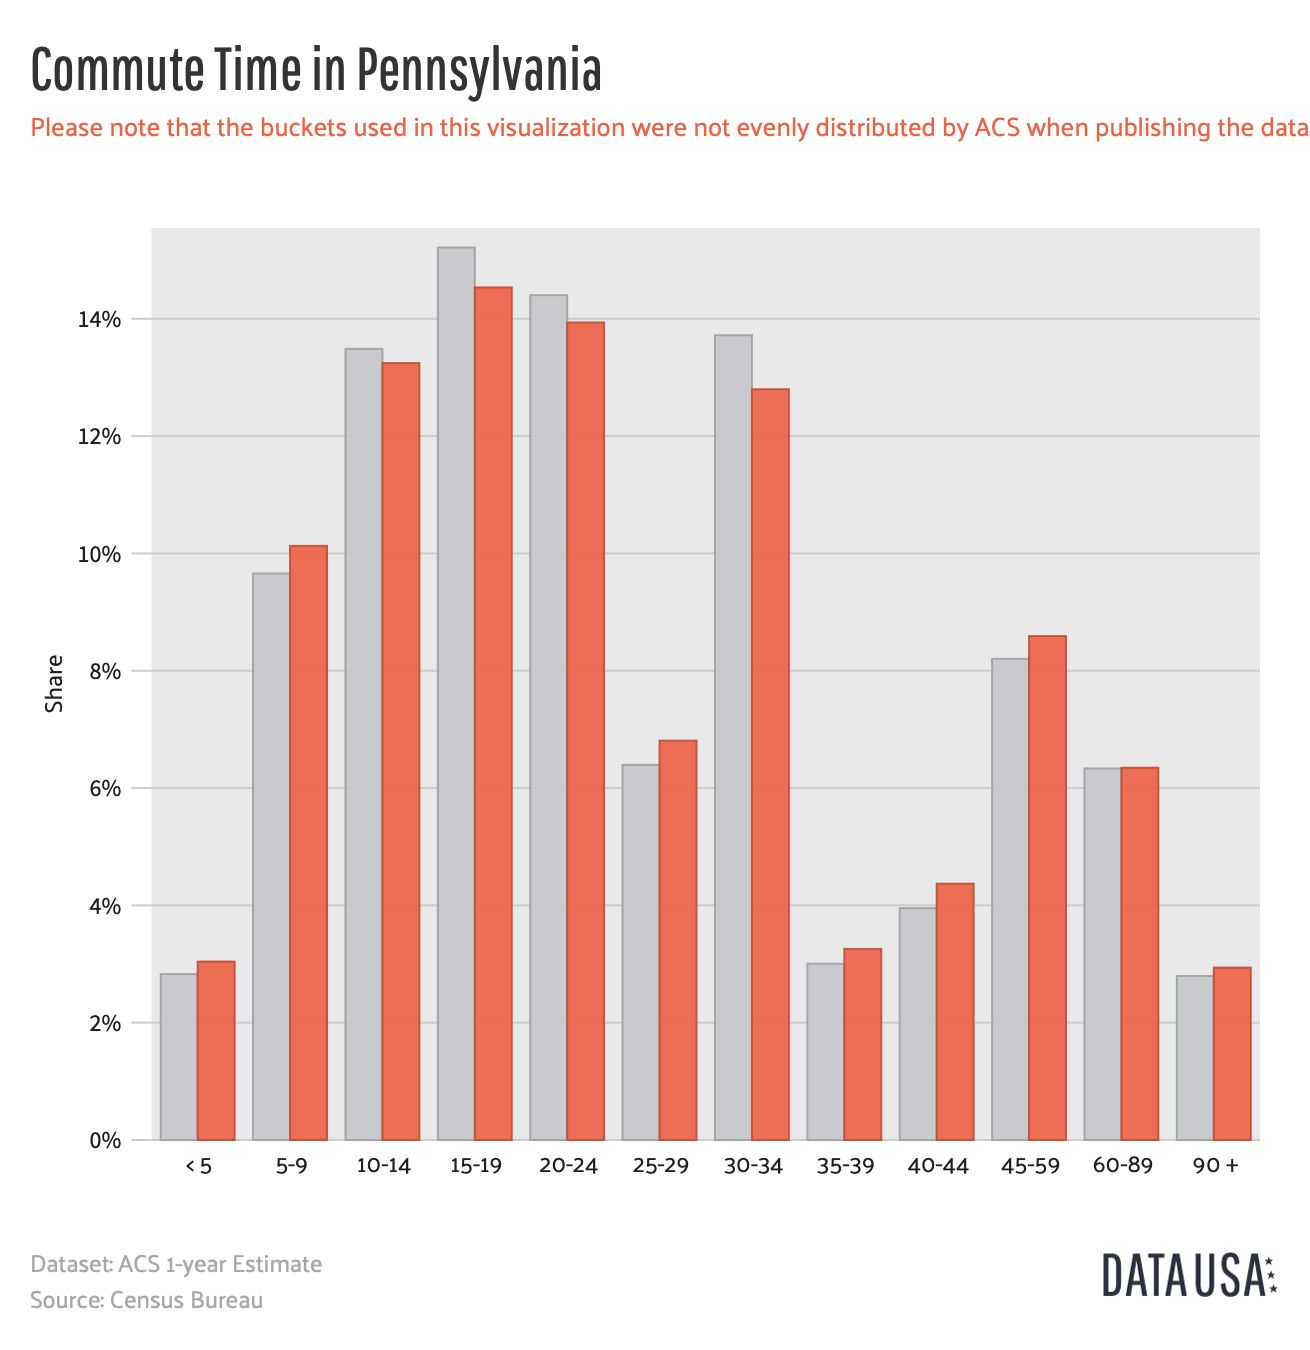 Pennsylvania Commute Time